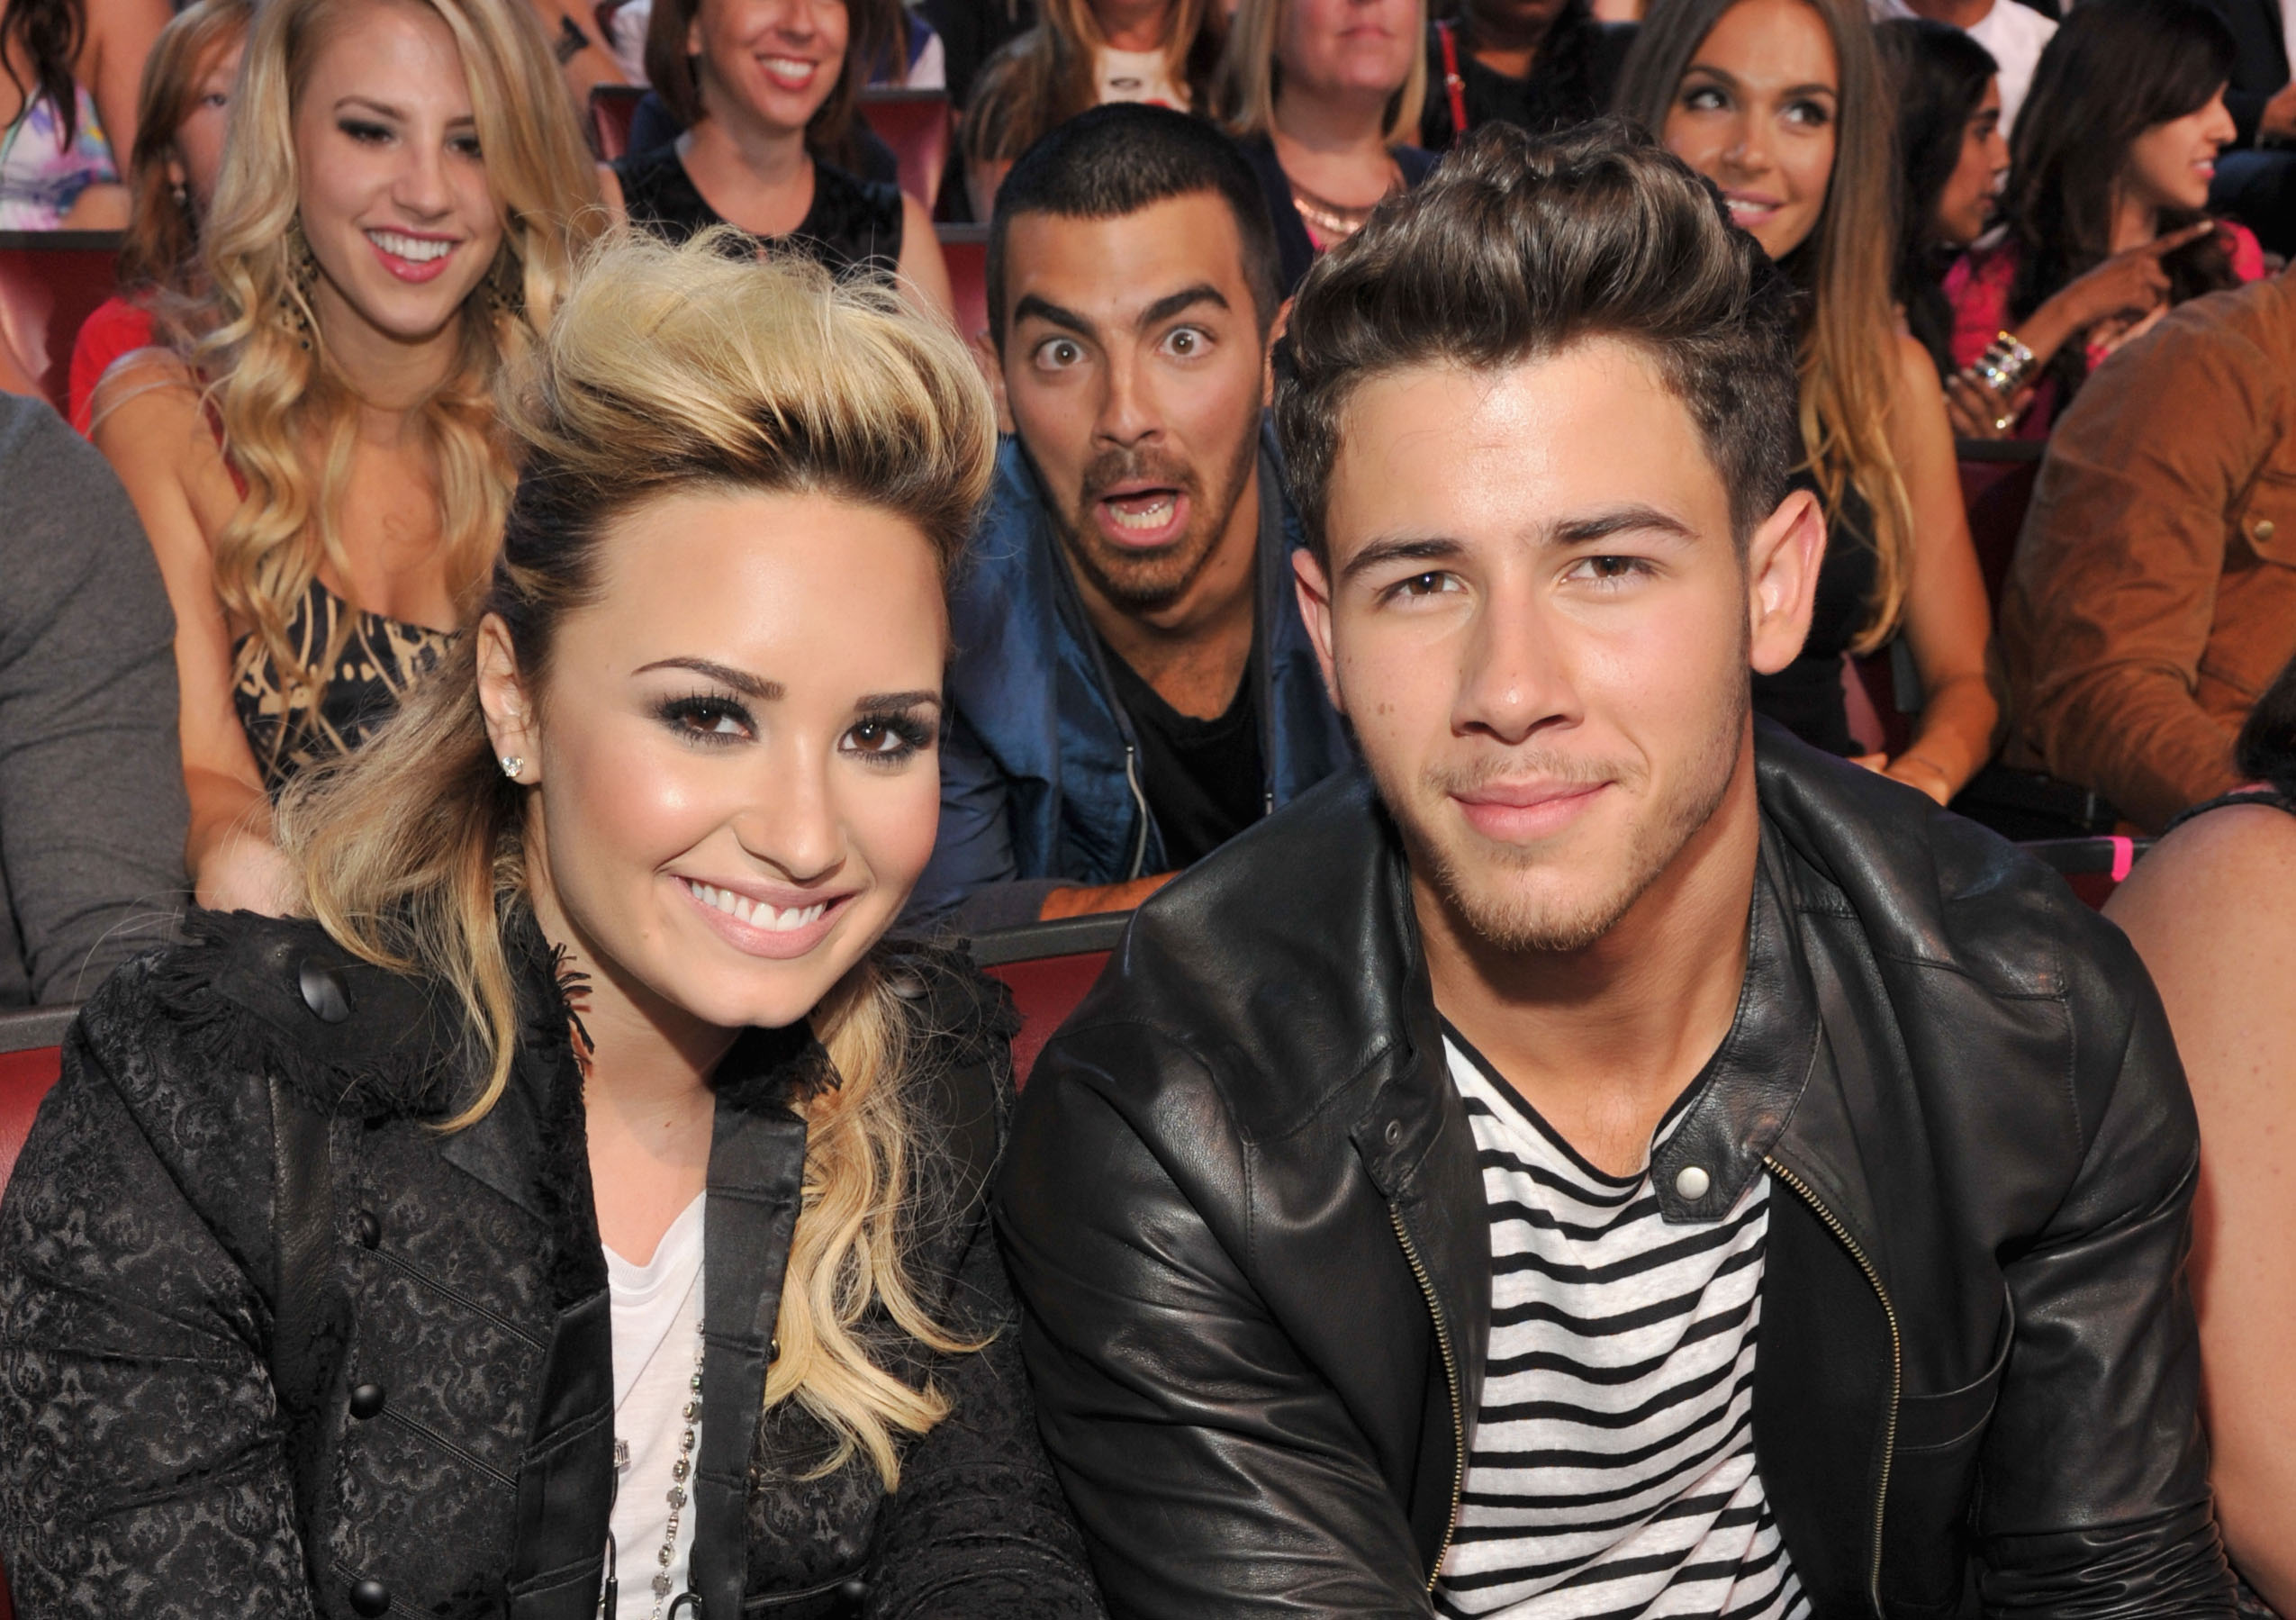 Nick Jonas and Demi Lovato Photobomb